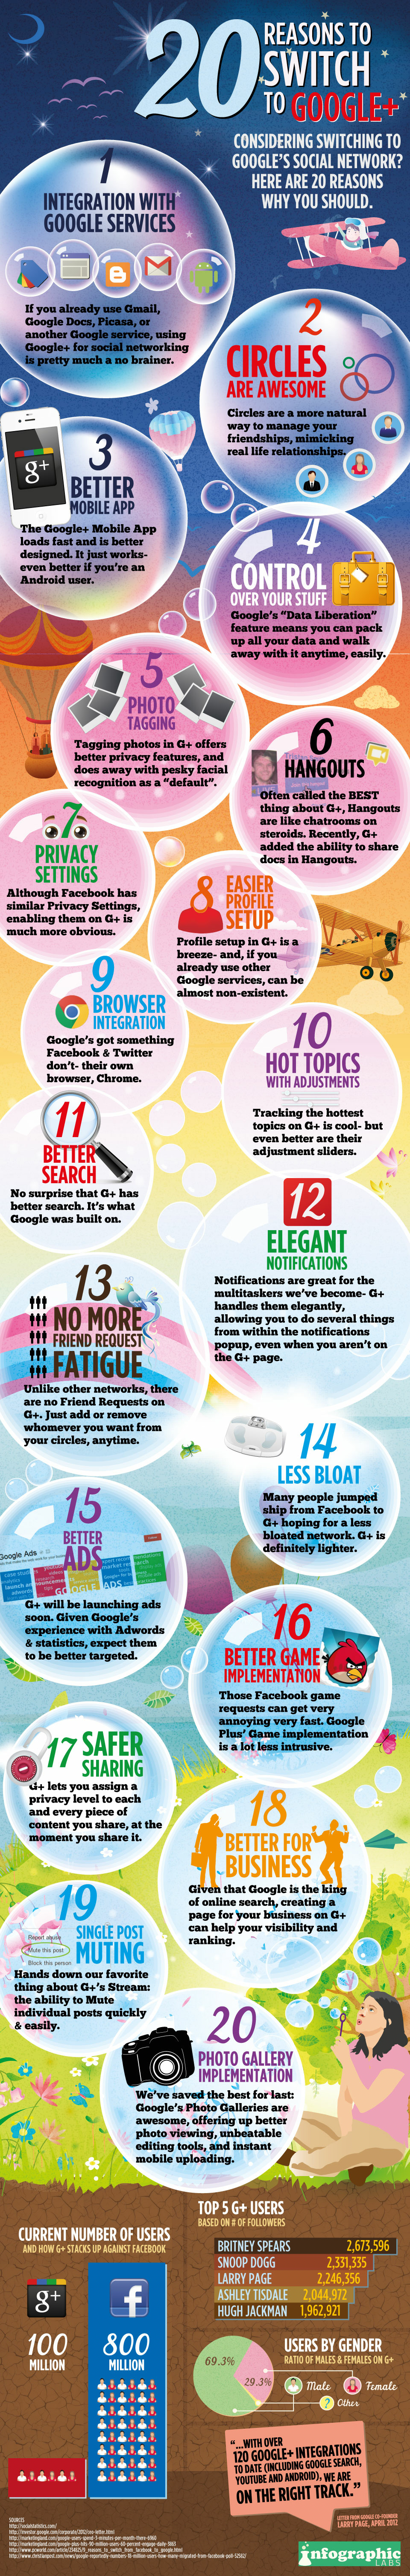 20 Reasons To Switch To Google Plus [INFOGRAPHIC] | inspirationfeed.com